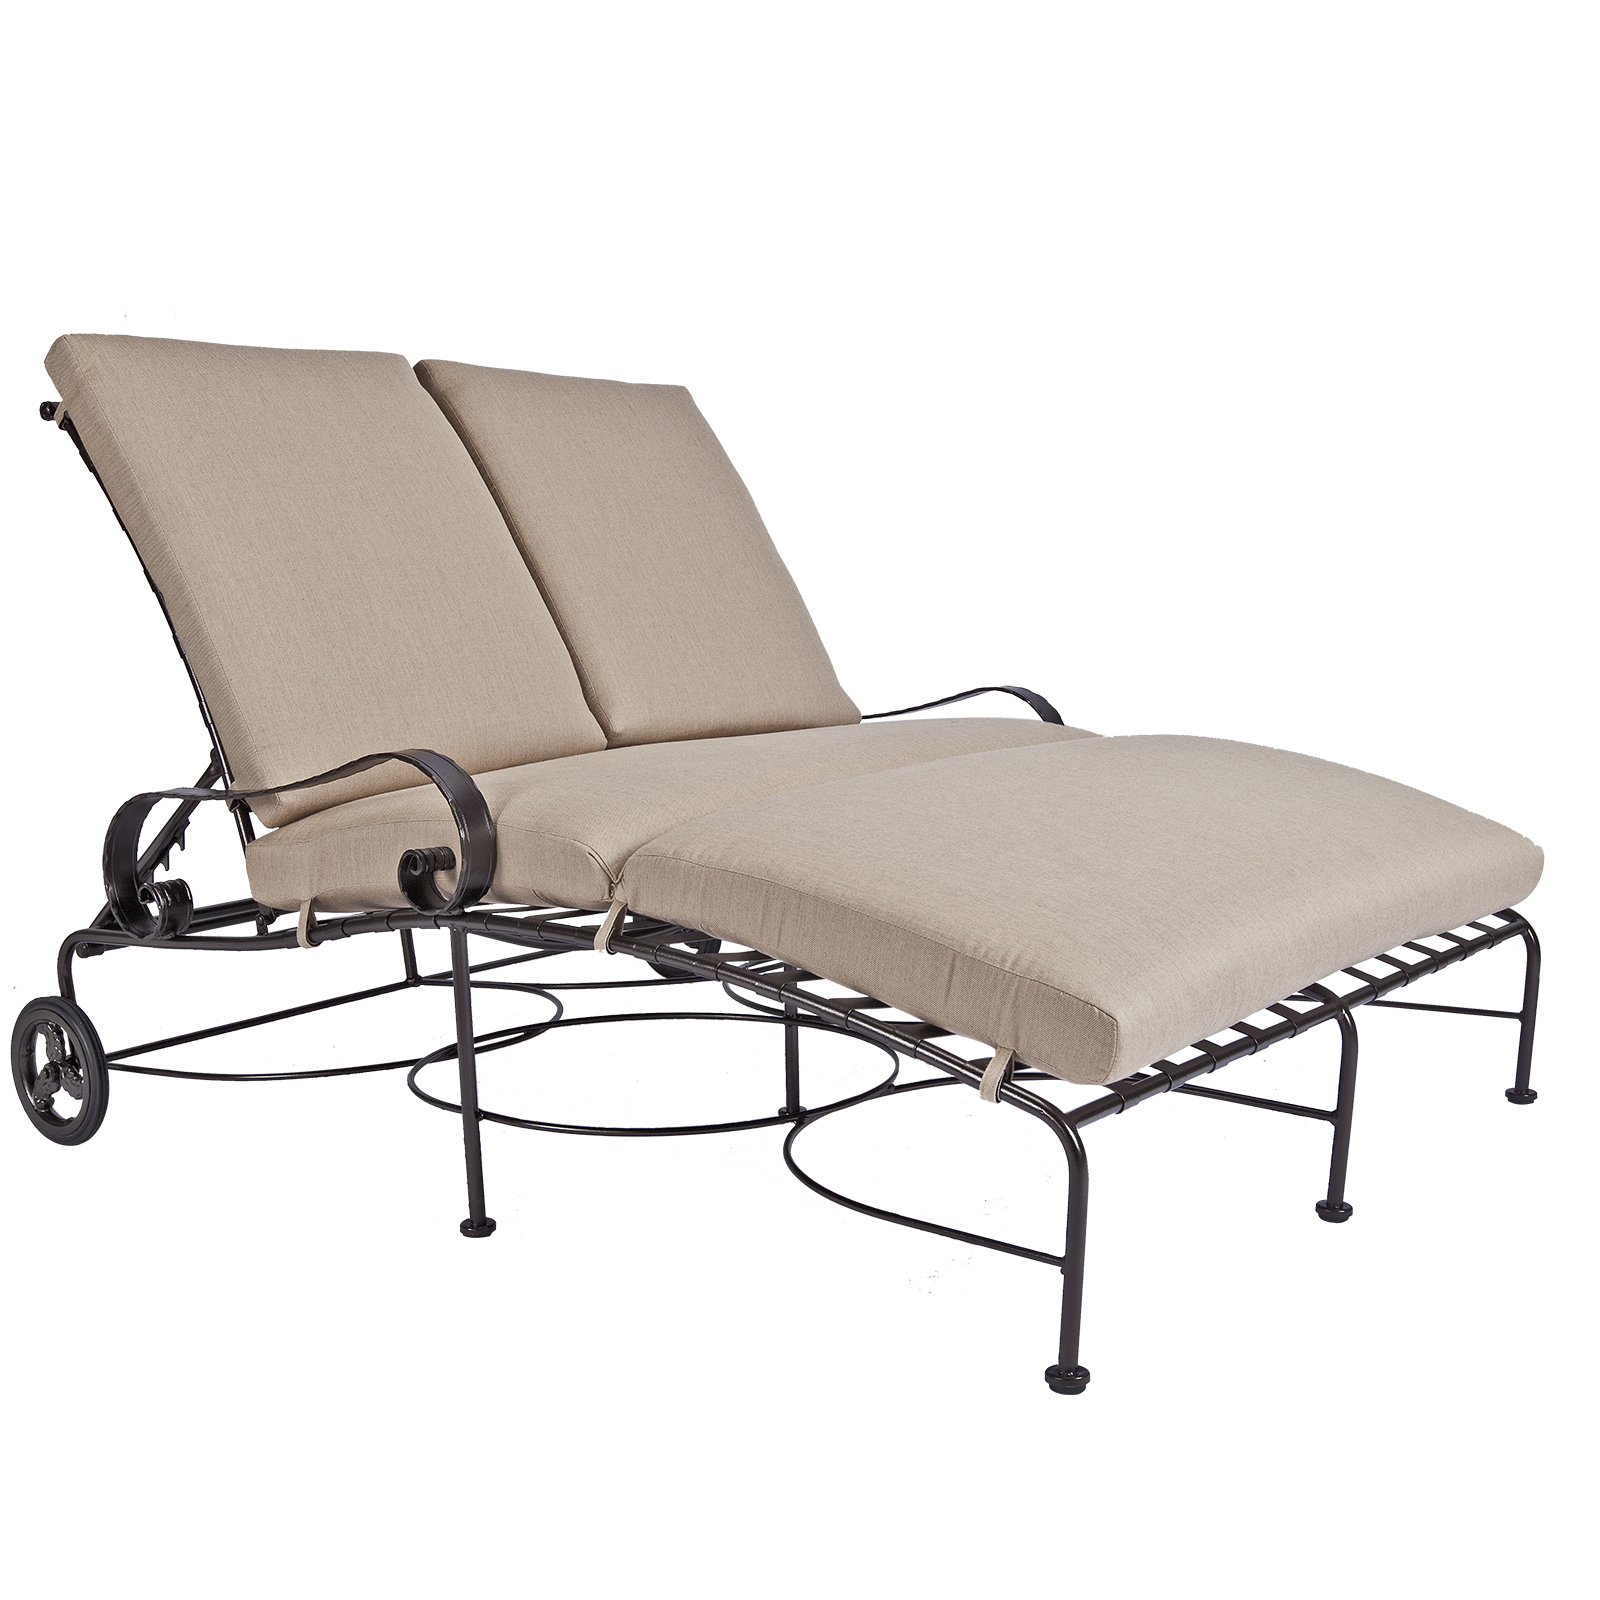 Adjustable-Double-Chaise-938-DCHW_Catalog_GR35_1600-Classico-W-OW-Lee